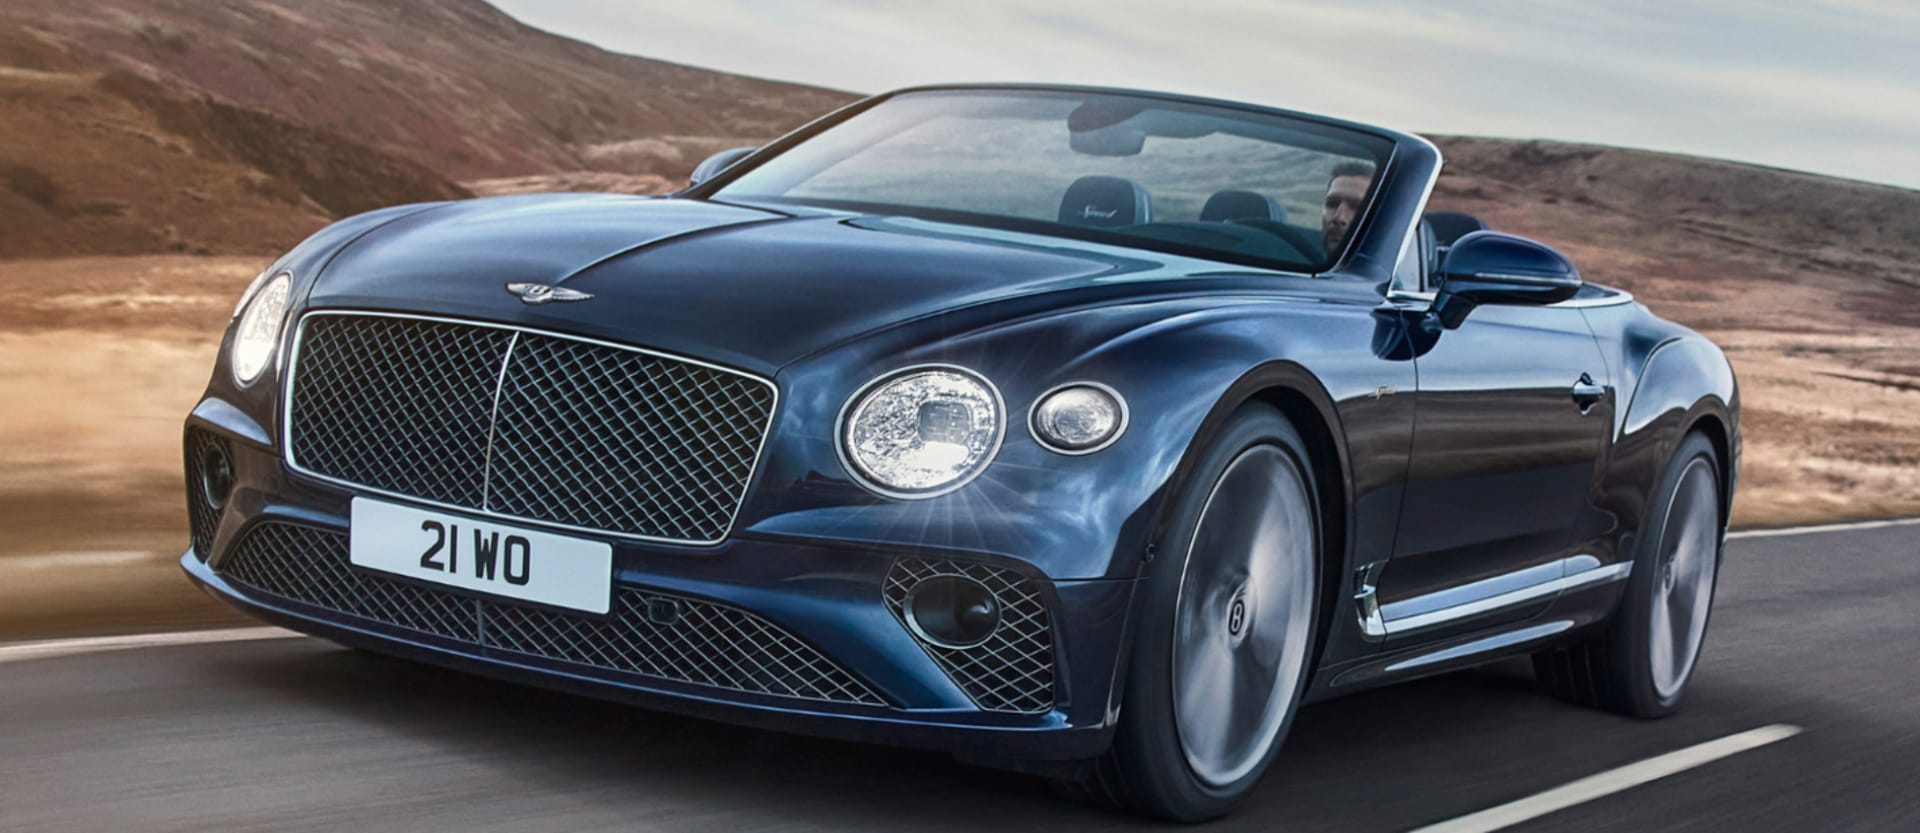 Continental GT Speed Convertible Normal Jpg